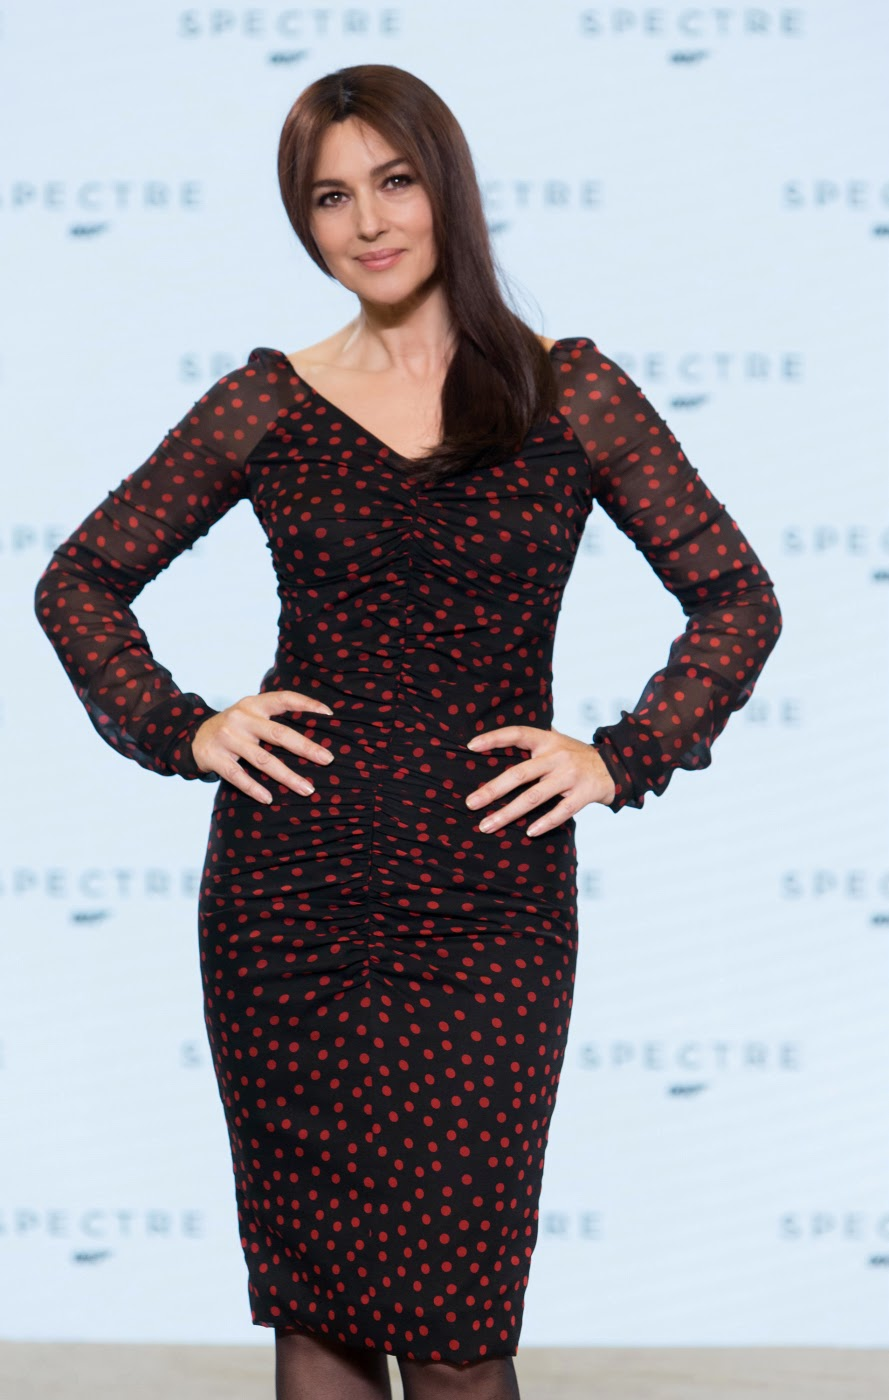 James Bond 007 SPECTRE: Monica Bellucci ist Lucia Sciarra